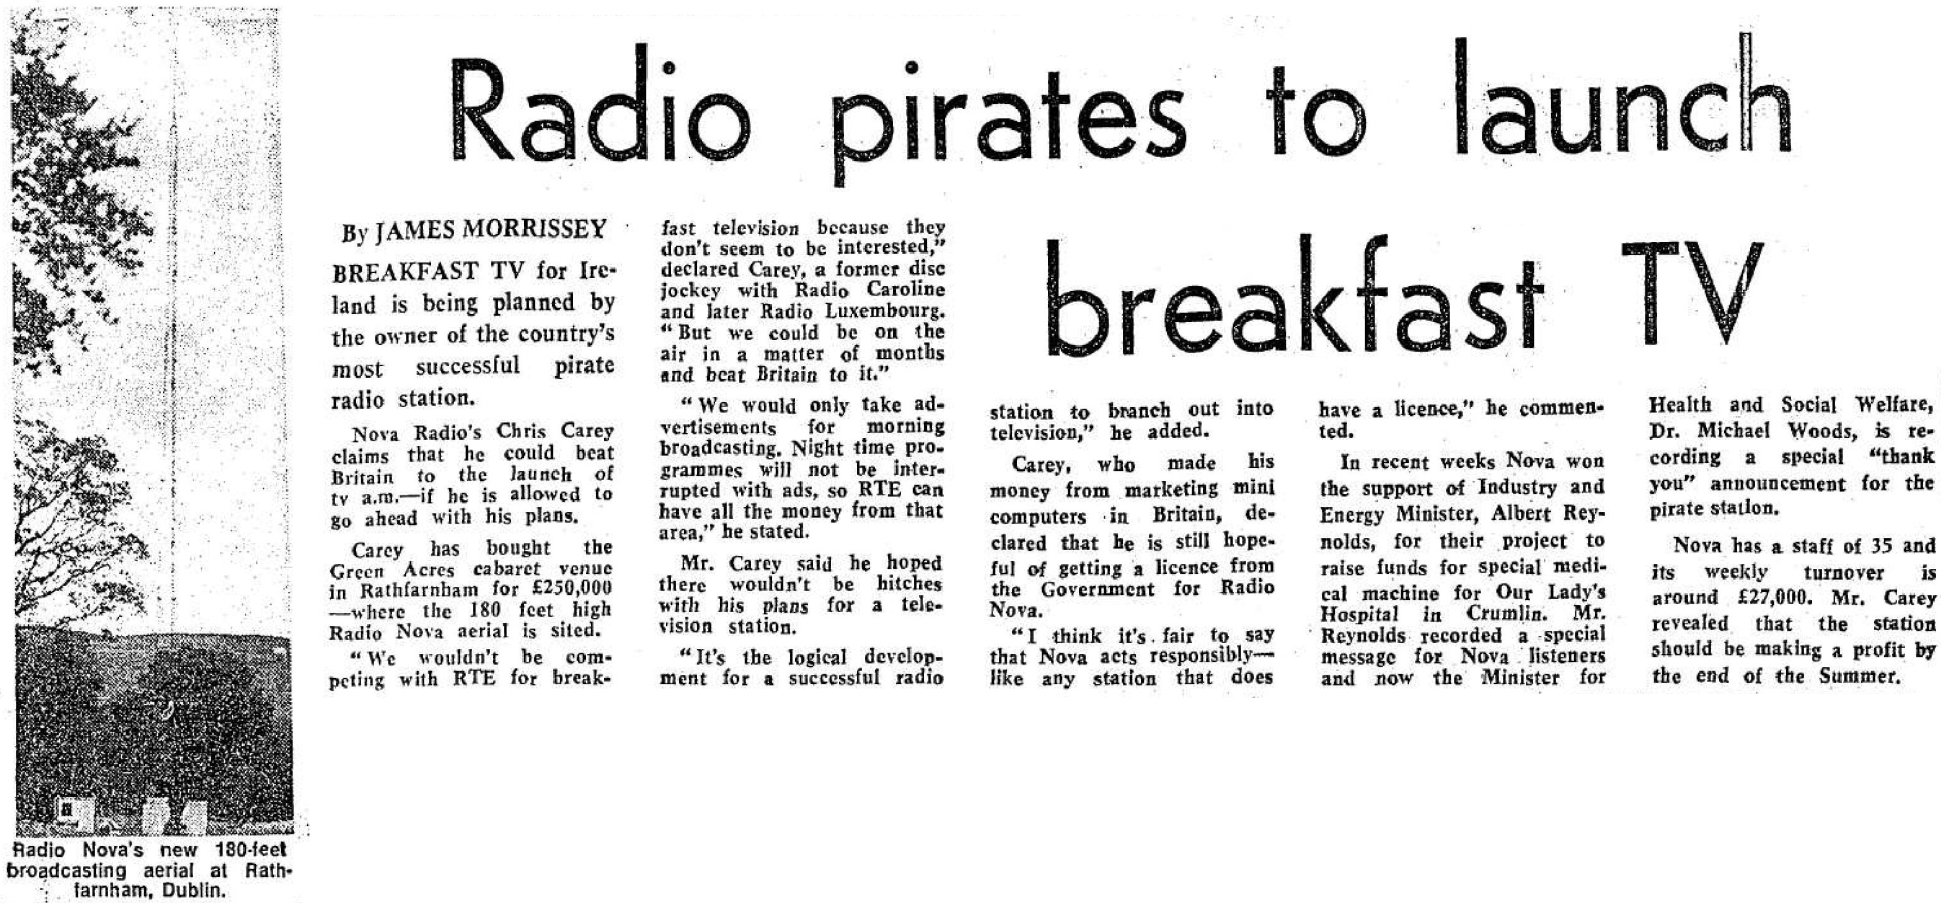 Radio pirates to launch breakfast TV was a newspaper headline from The Evening Herald dated May 26th 1982